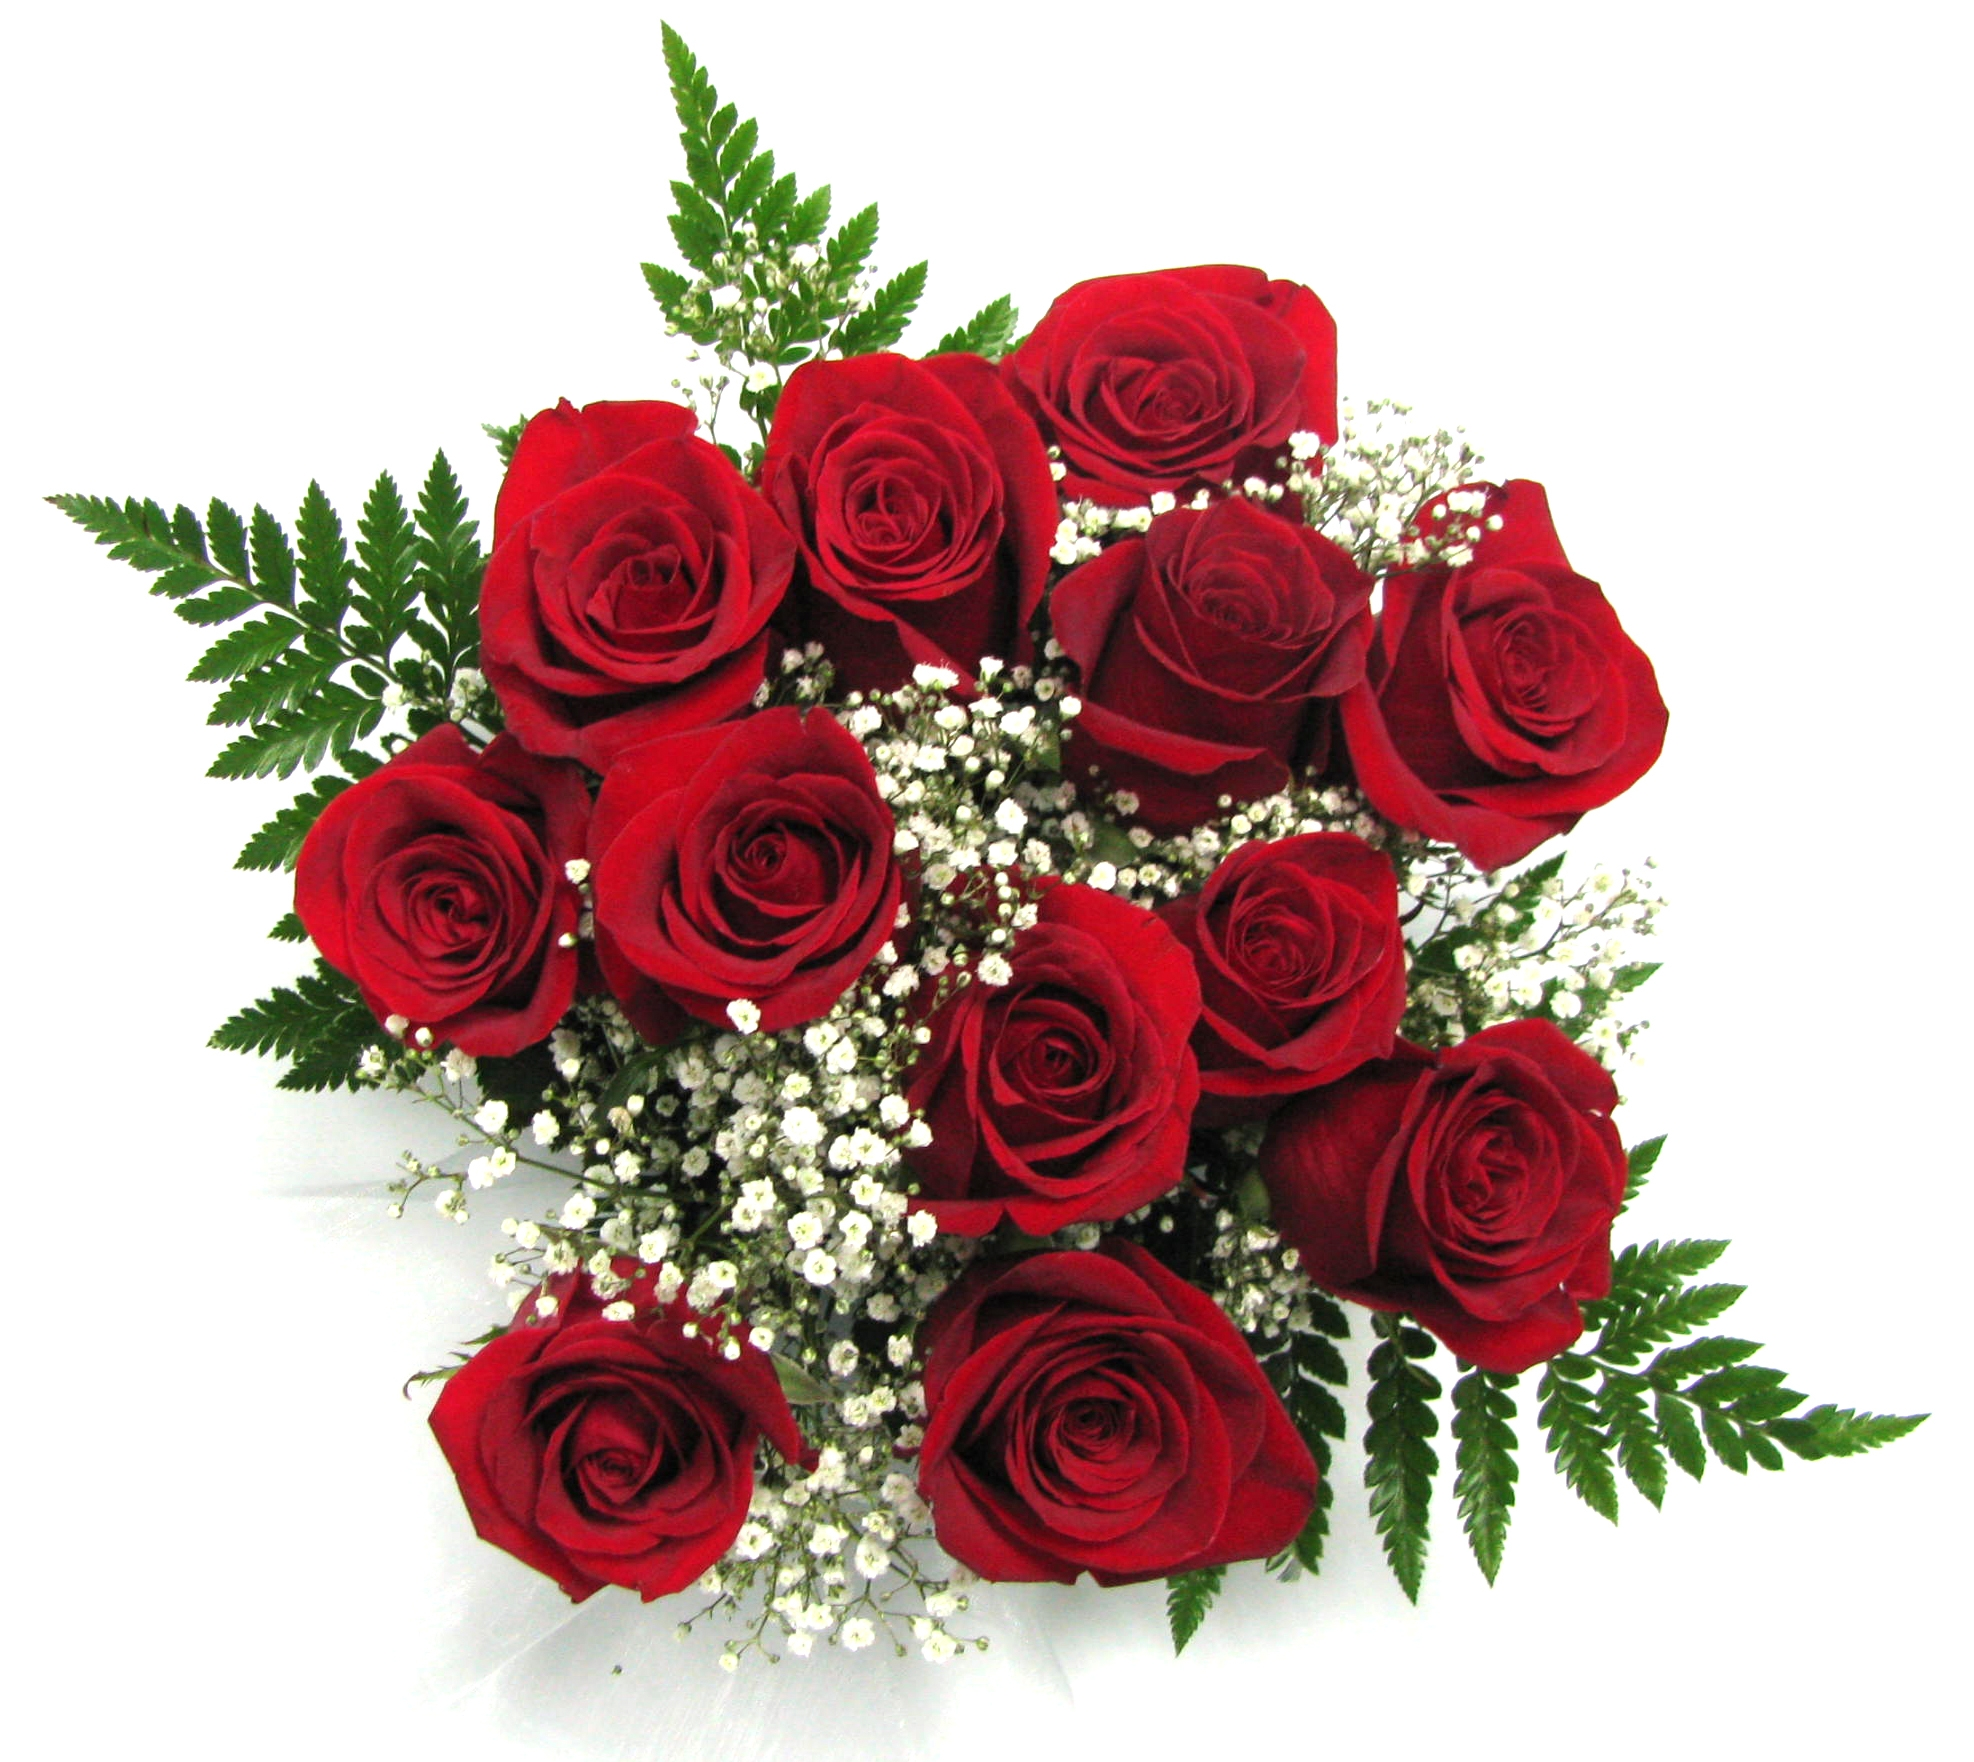 King Kullen Offers Roses Candy Bouquet Arrangements More for